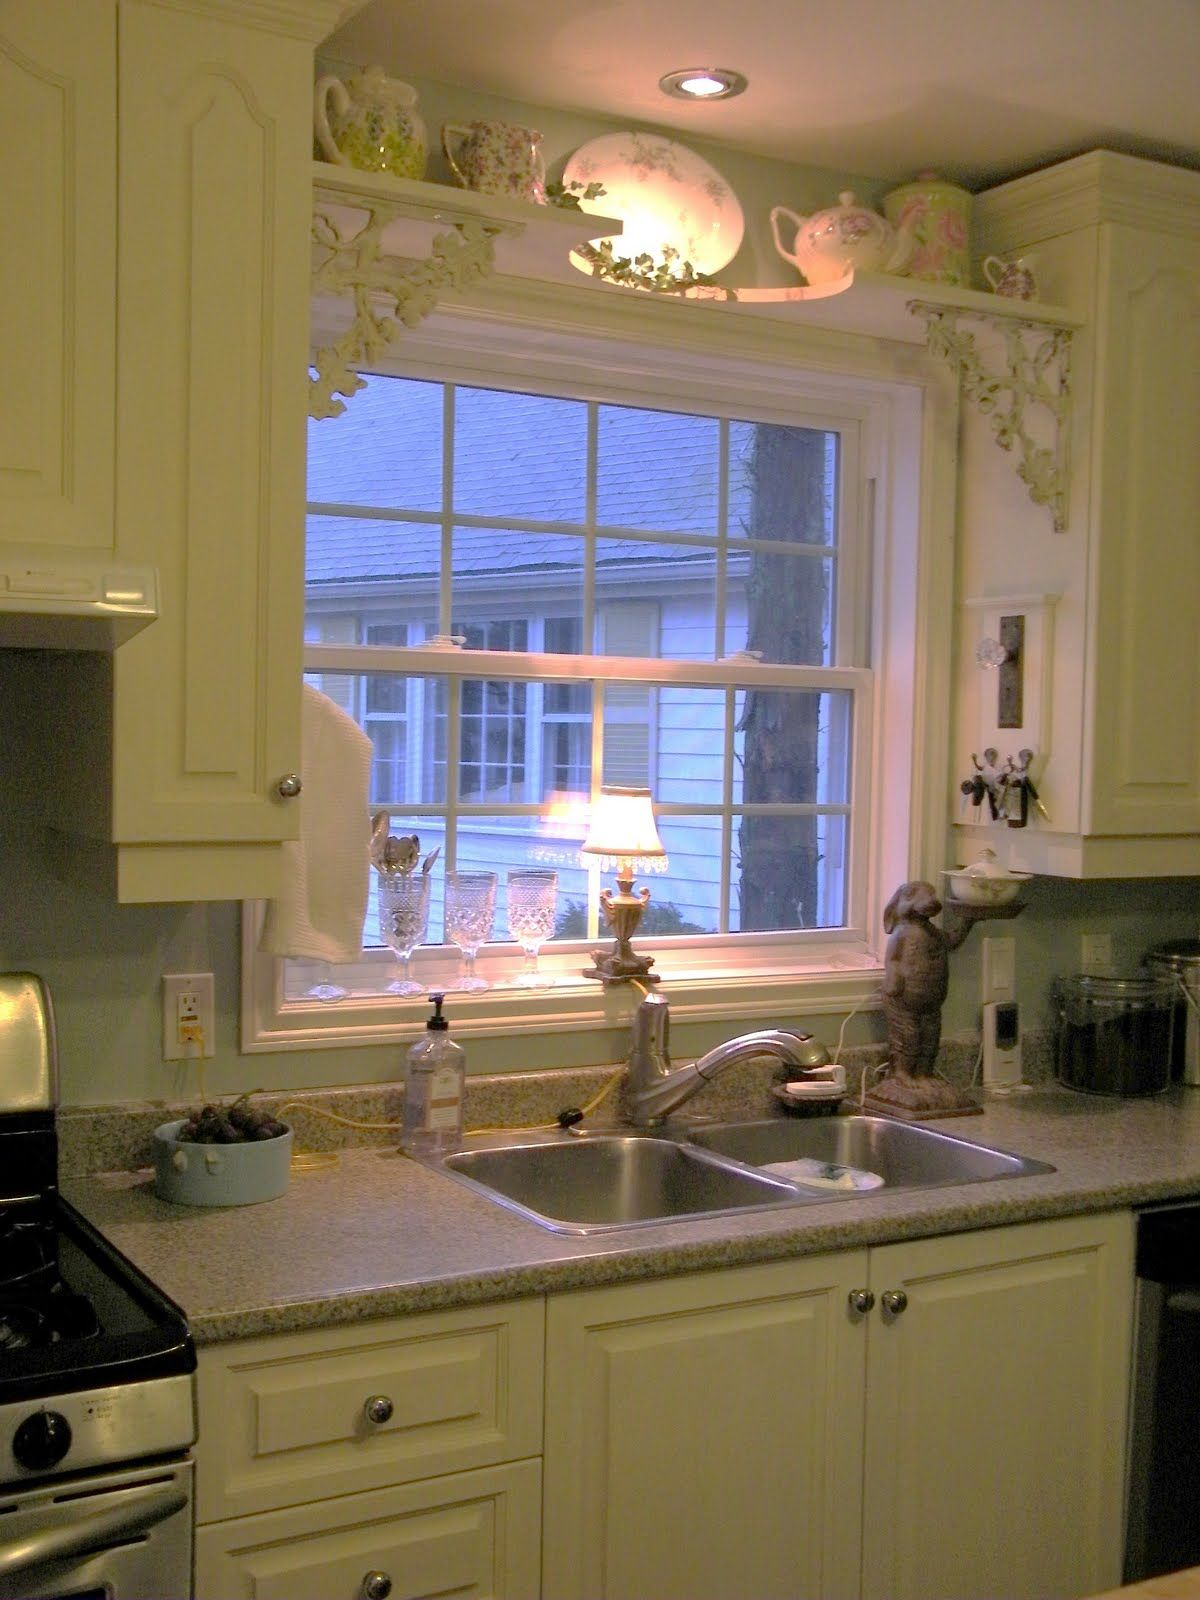 Kitchen window treatments  kitchen window  kitchenwindowandeasterjpg  colonial